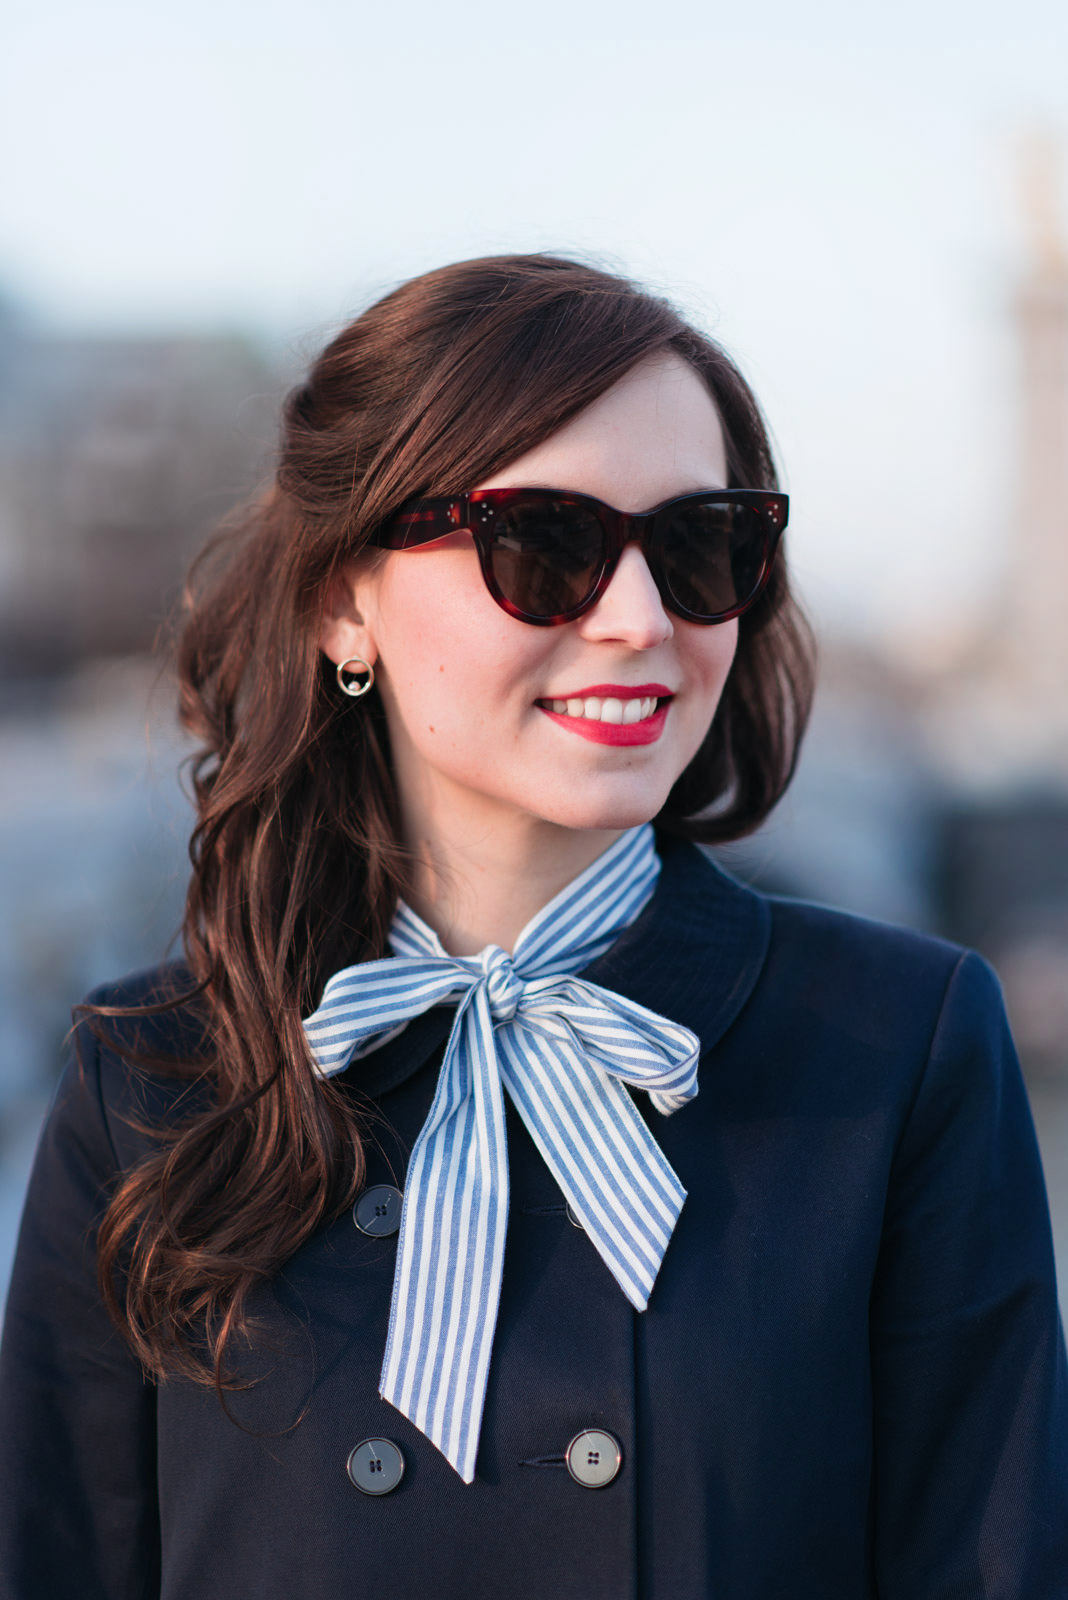 Blog-Mode-And-The-City-Looks-En-Sezane-Sur-Le-Pont-Alexandre-III-5